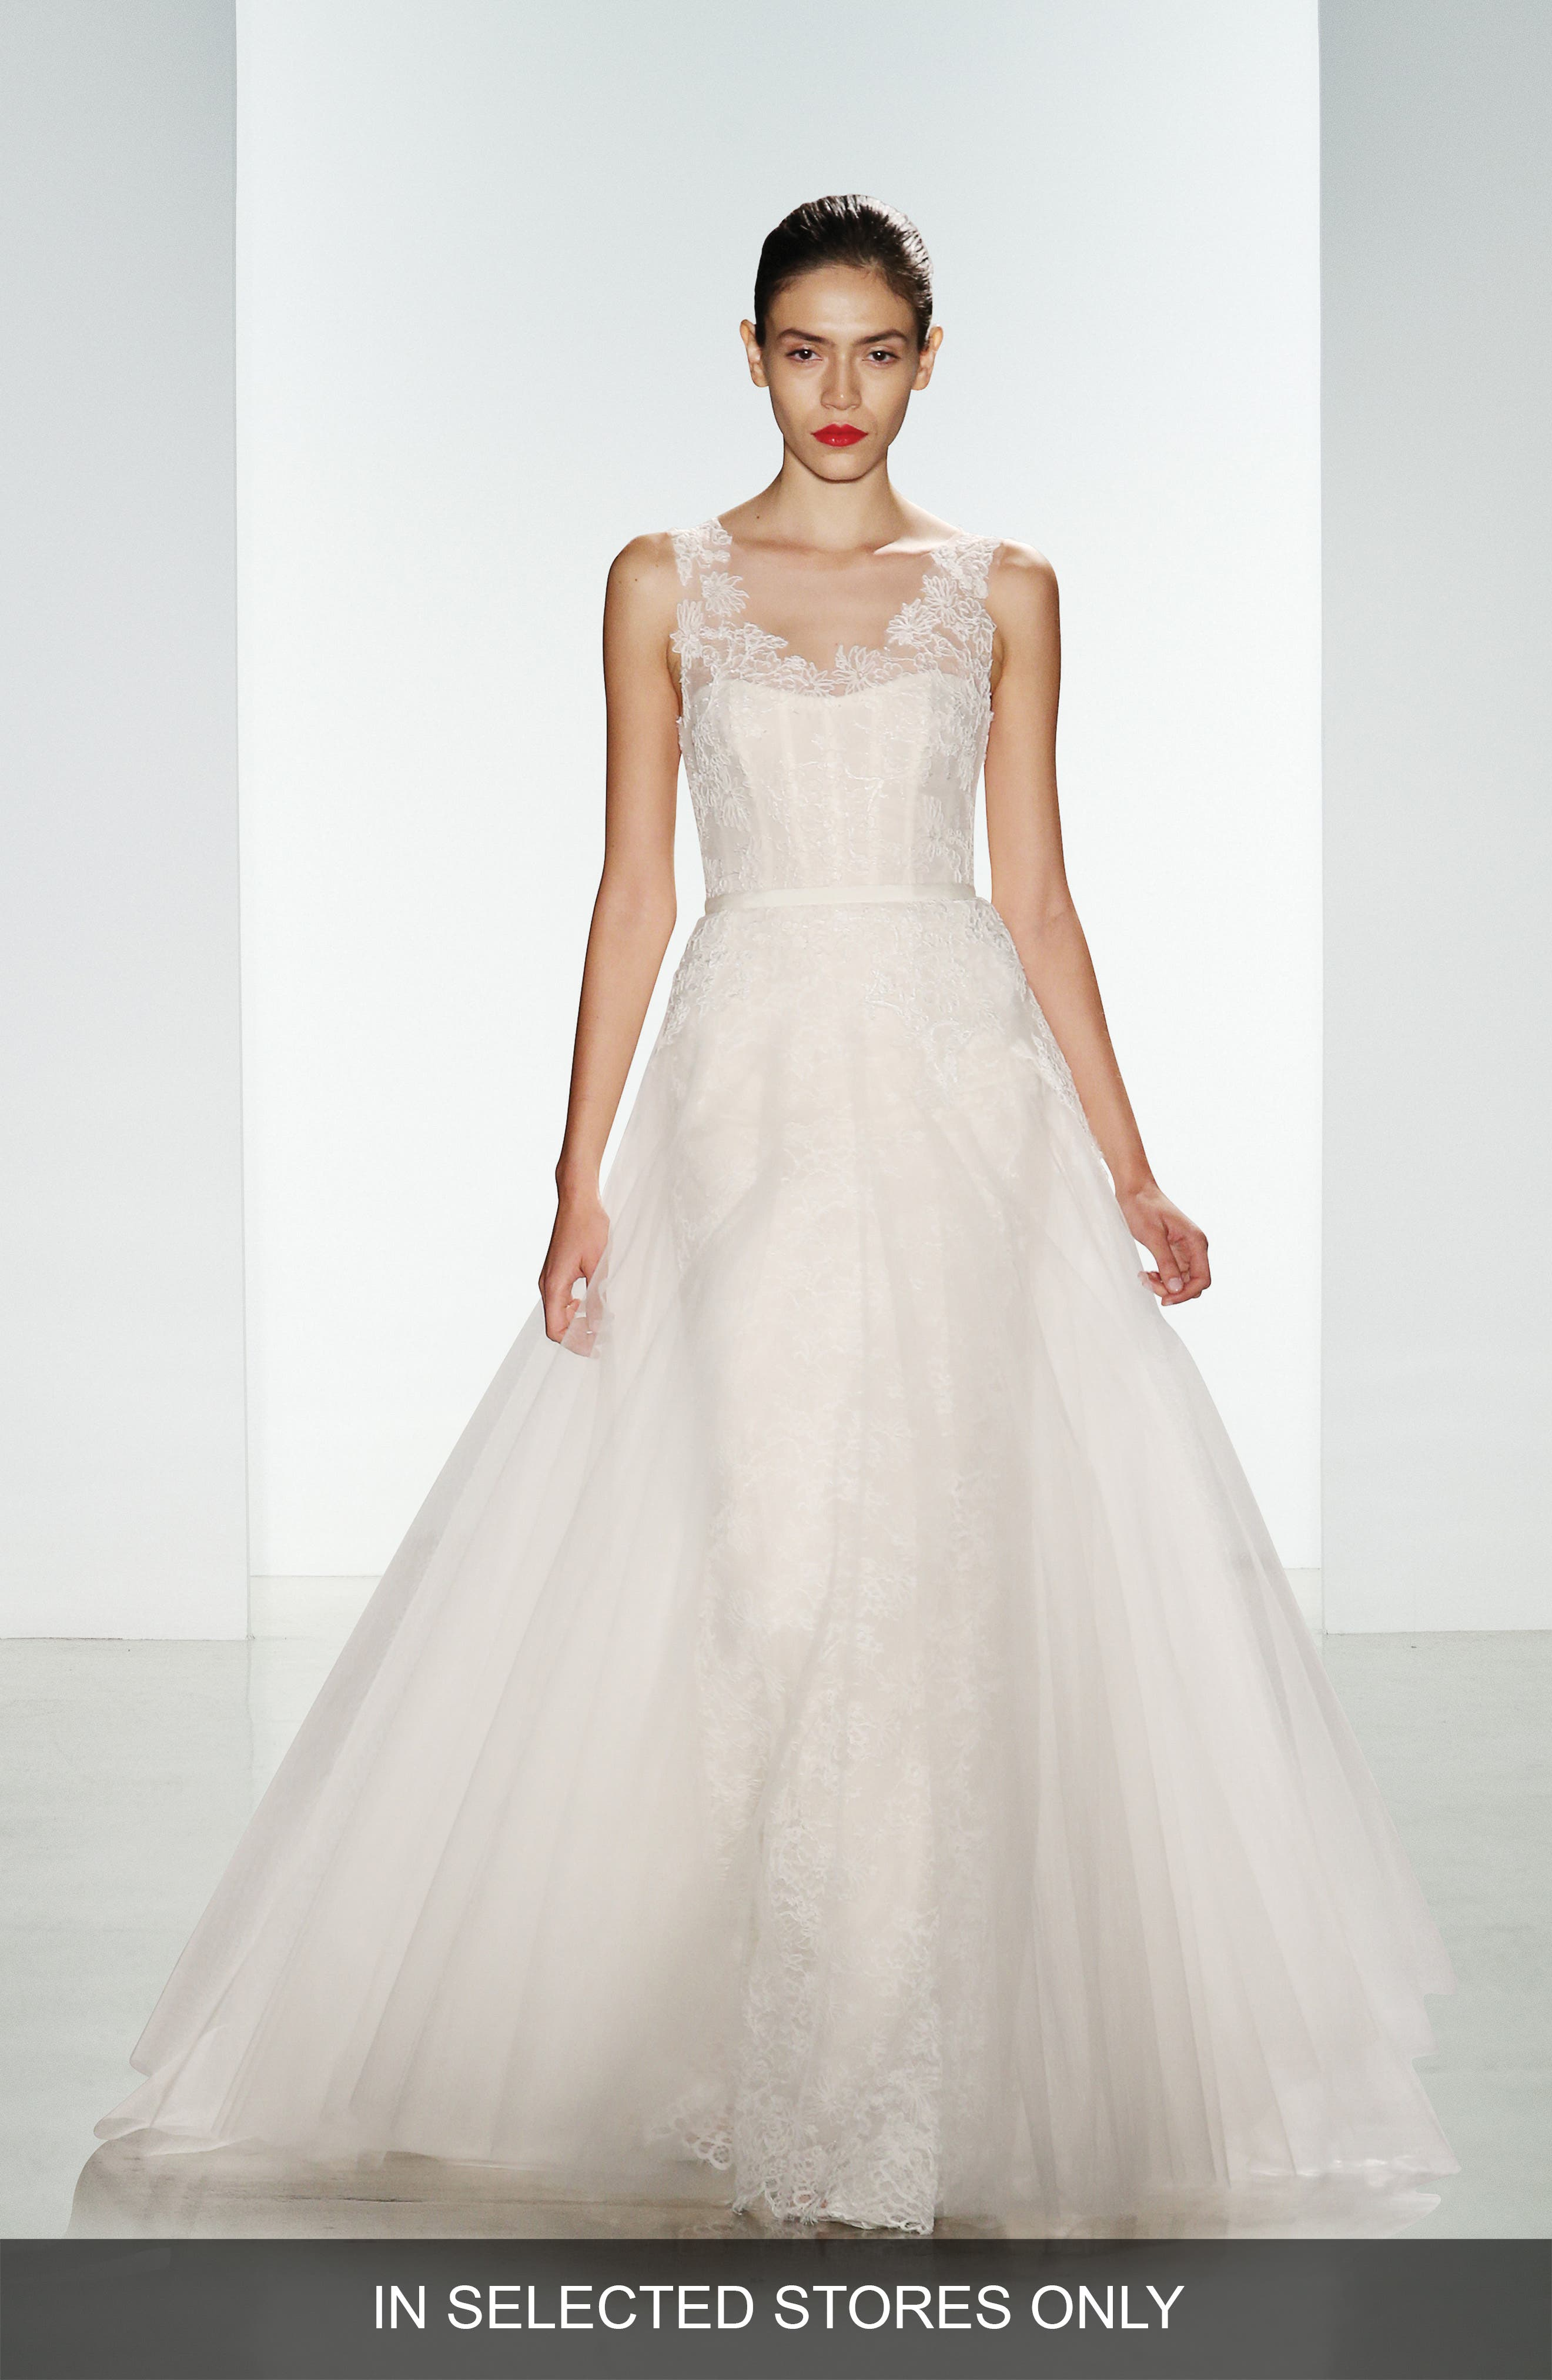 Rae Corded Lace Gown with Tulle Overskirt,                             Alternate thumbnail 2, color,                             901